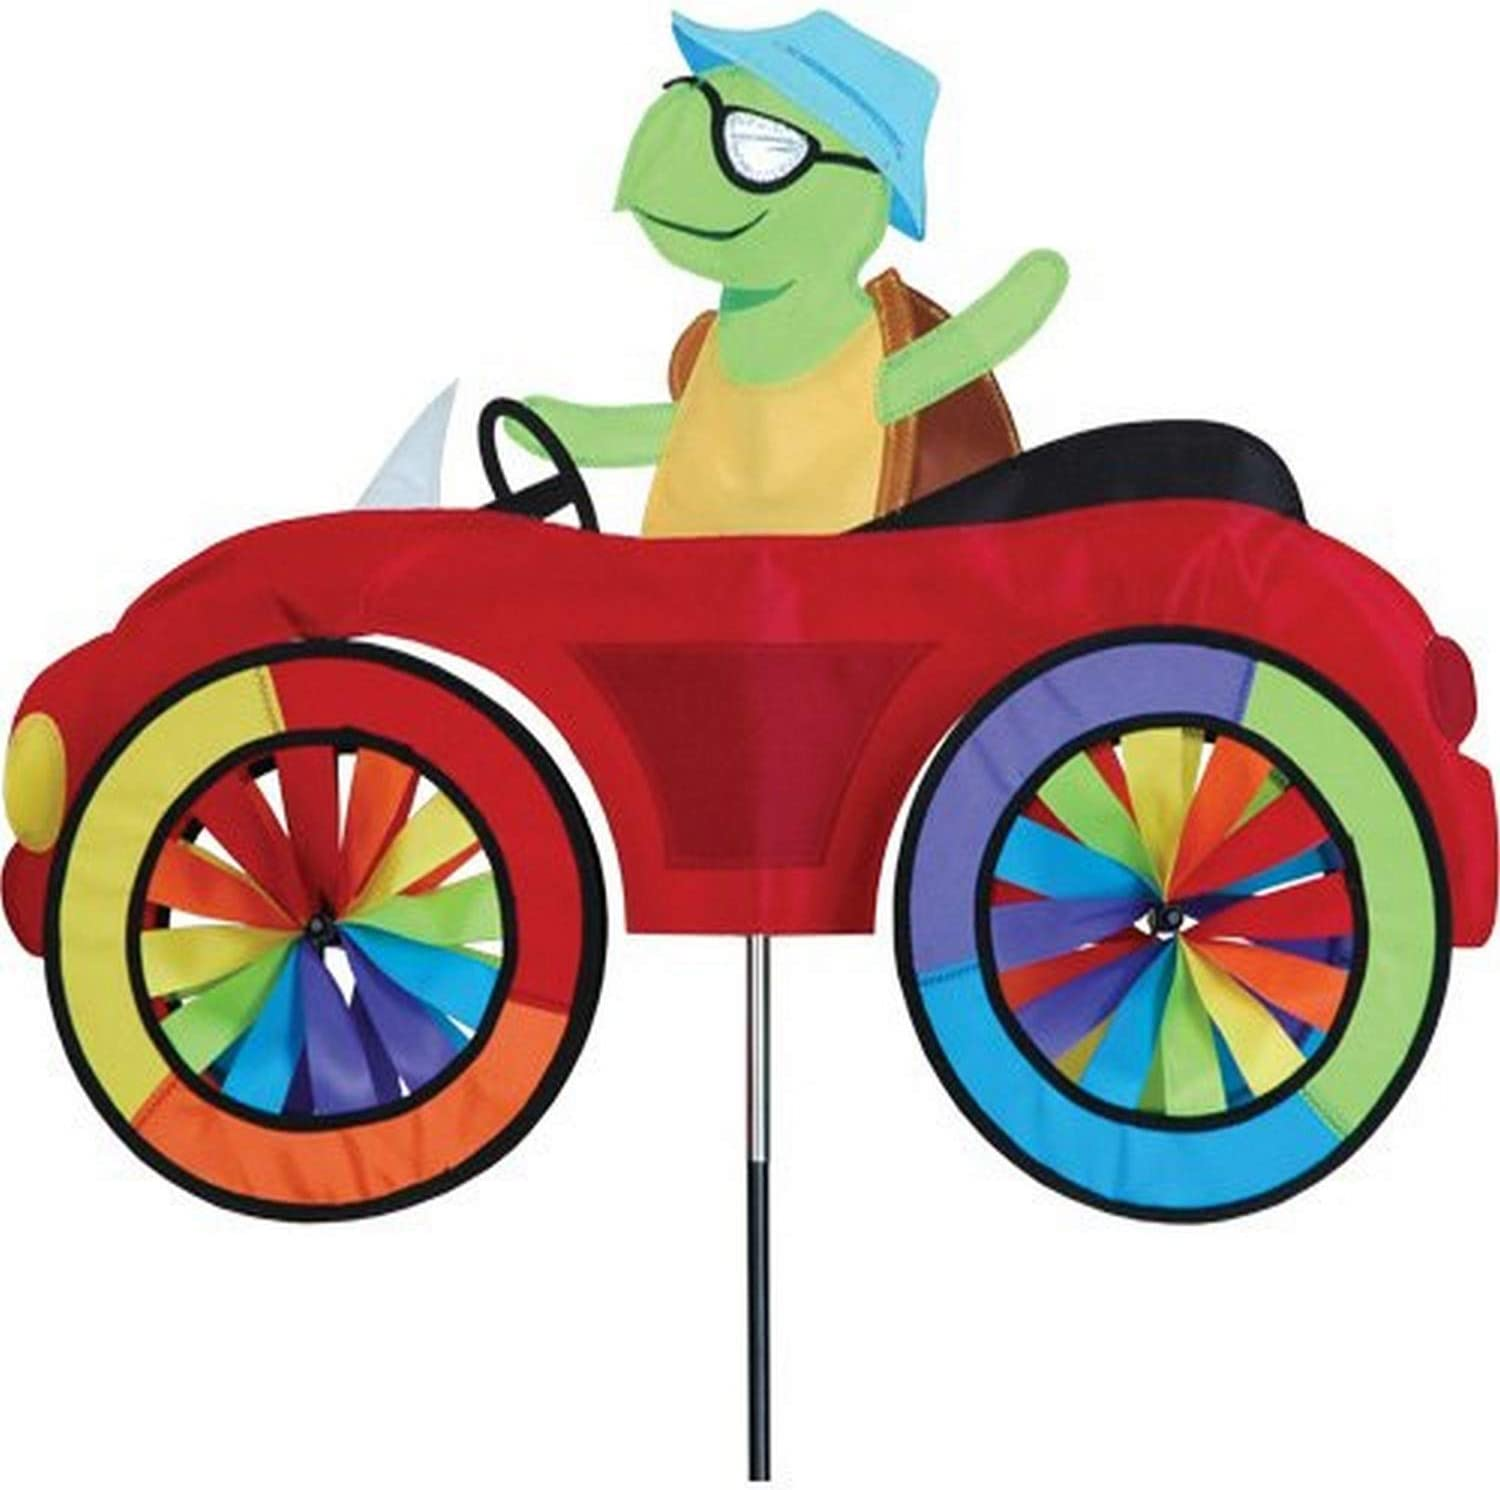 Premier 26754 Car Spinner New York Mall Industry No. 1 Turtle 25 by 18-3 4-Inch